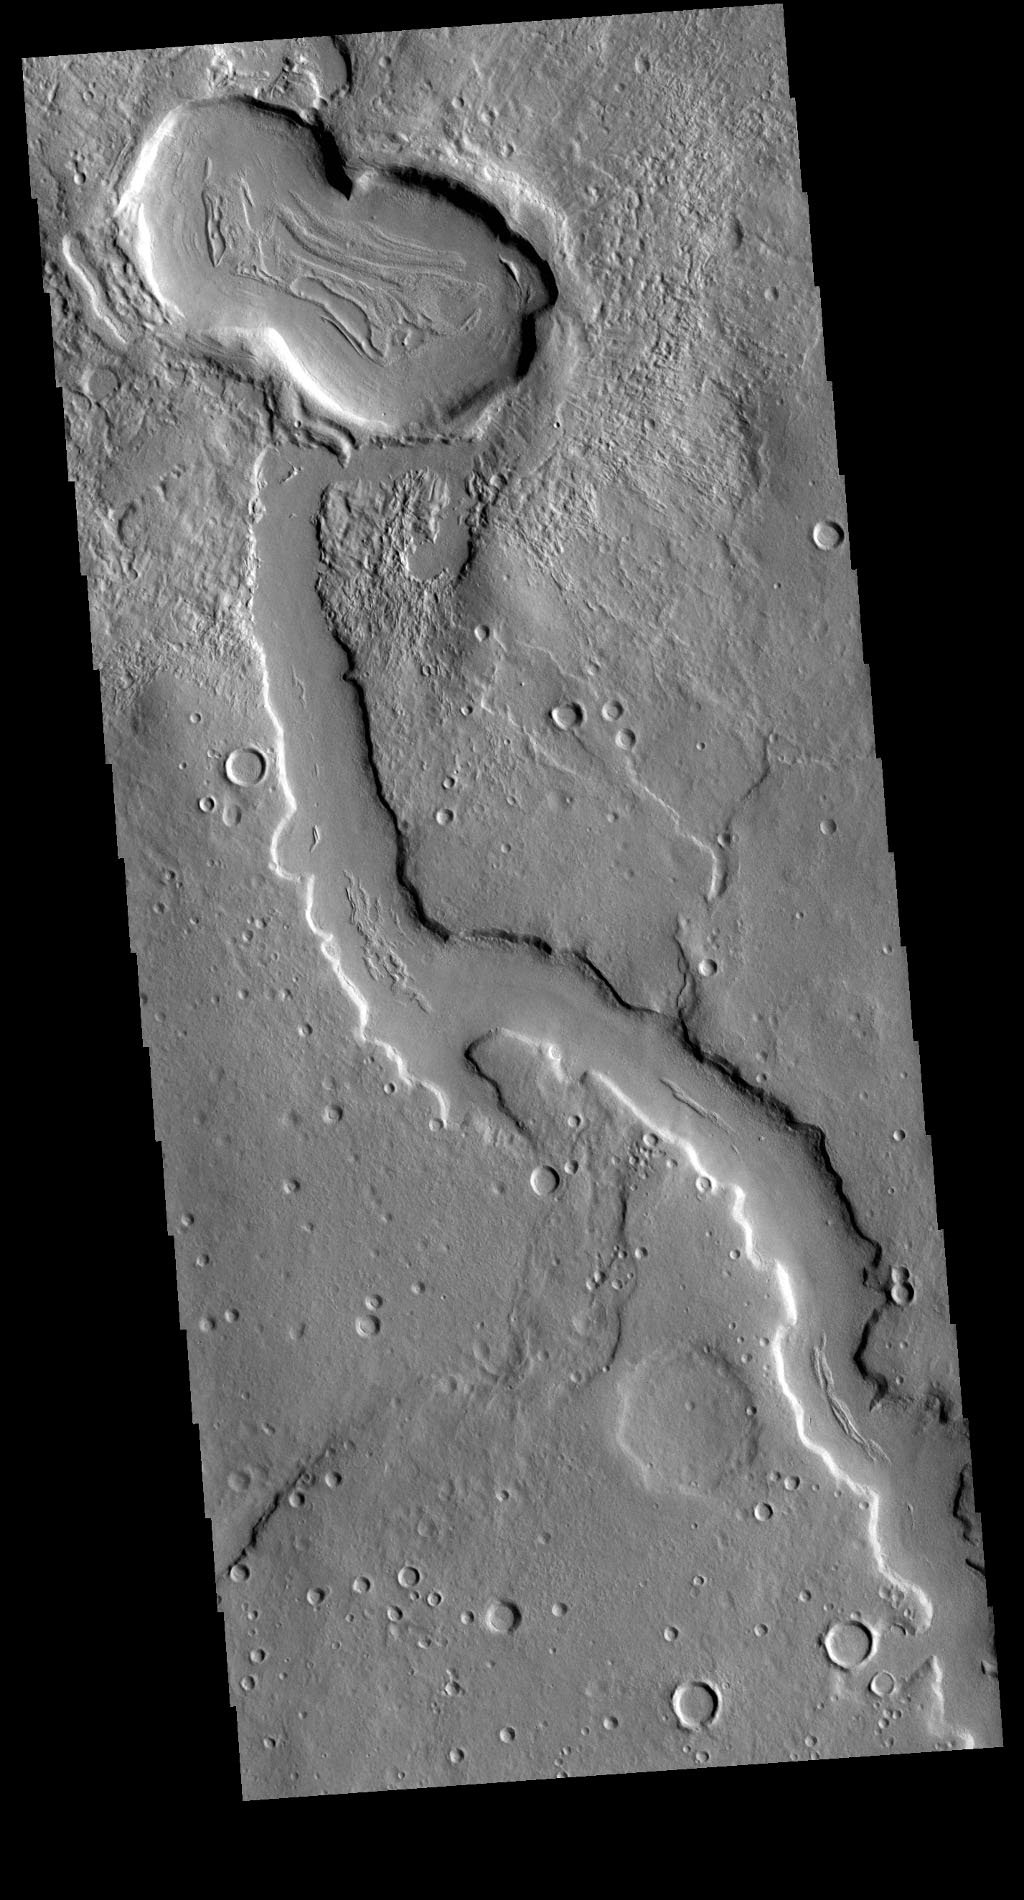 Terra Sabaea Channel